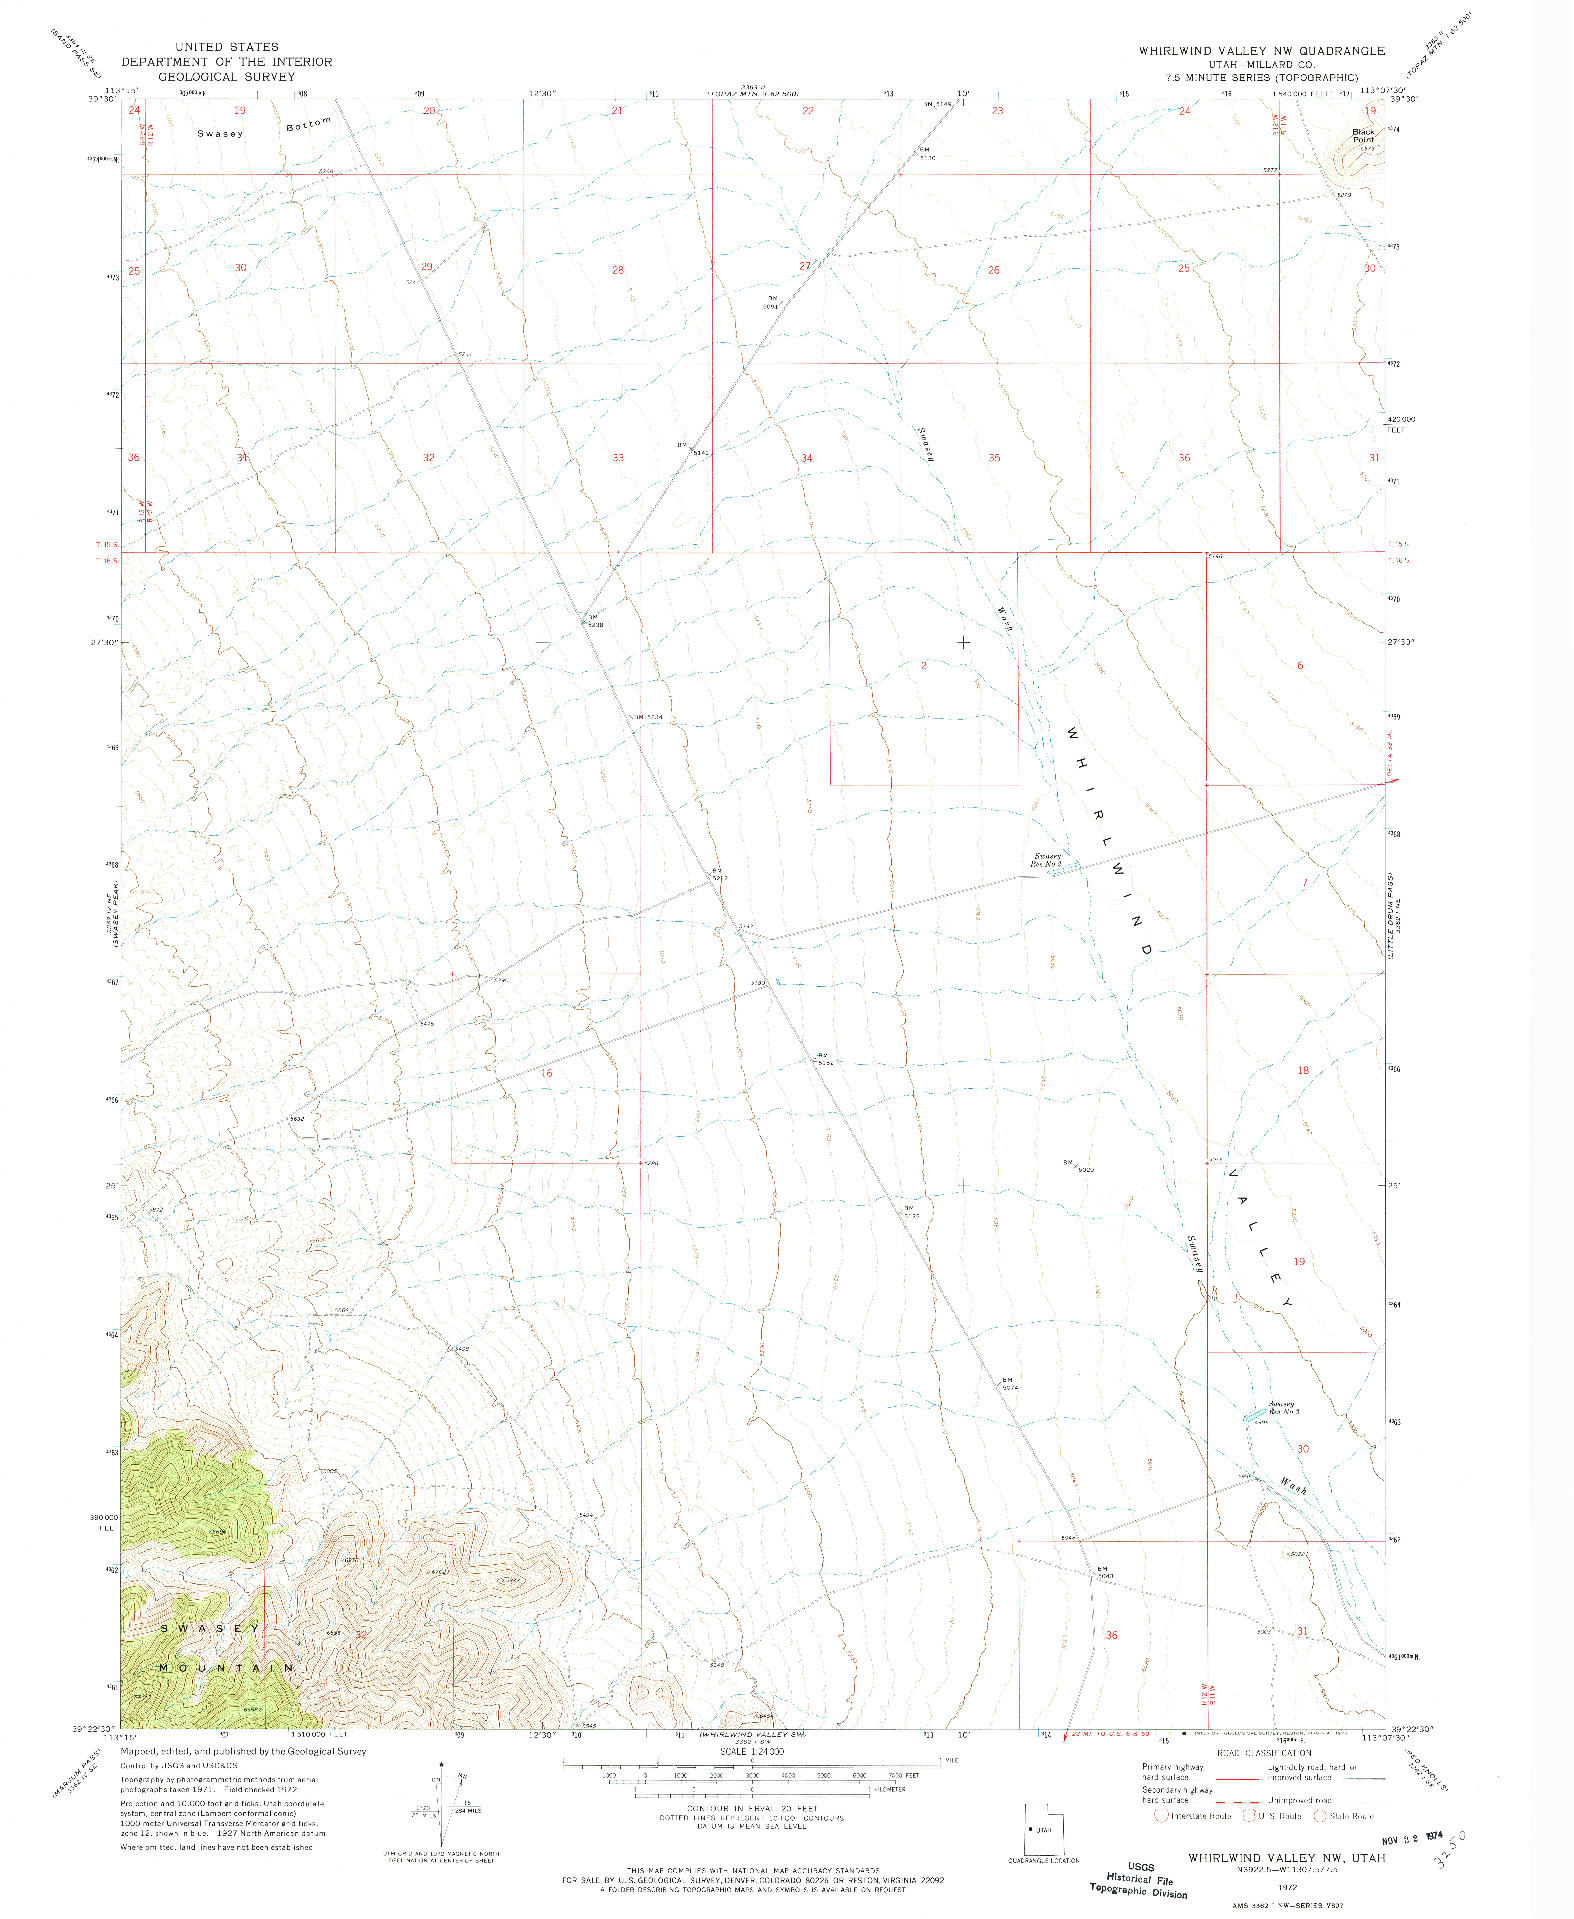 USGS 1:24000-SCALE QUADRANGLE FOR WHIRLWIND VALLEY NW, UT 1972